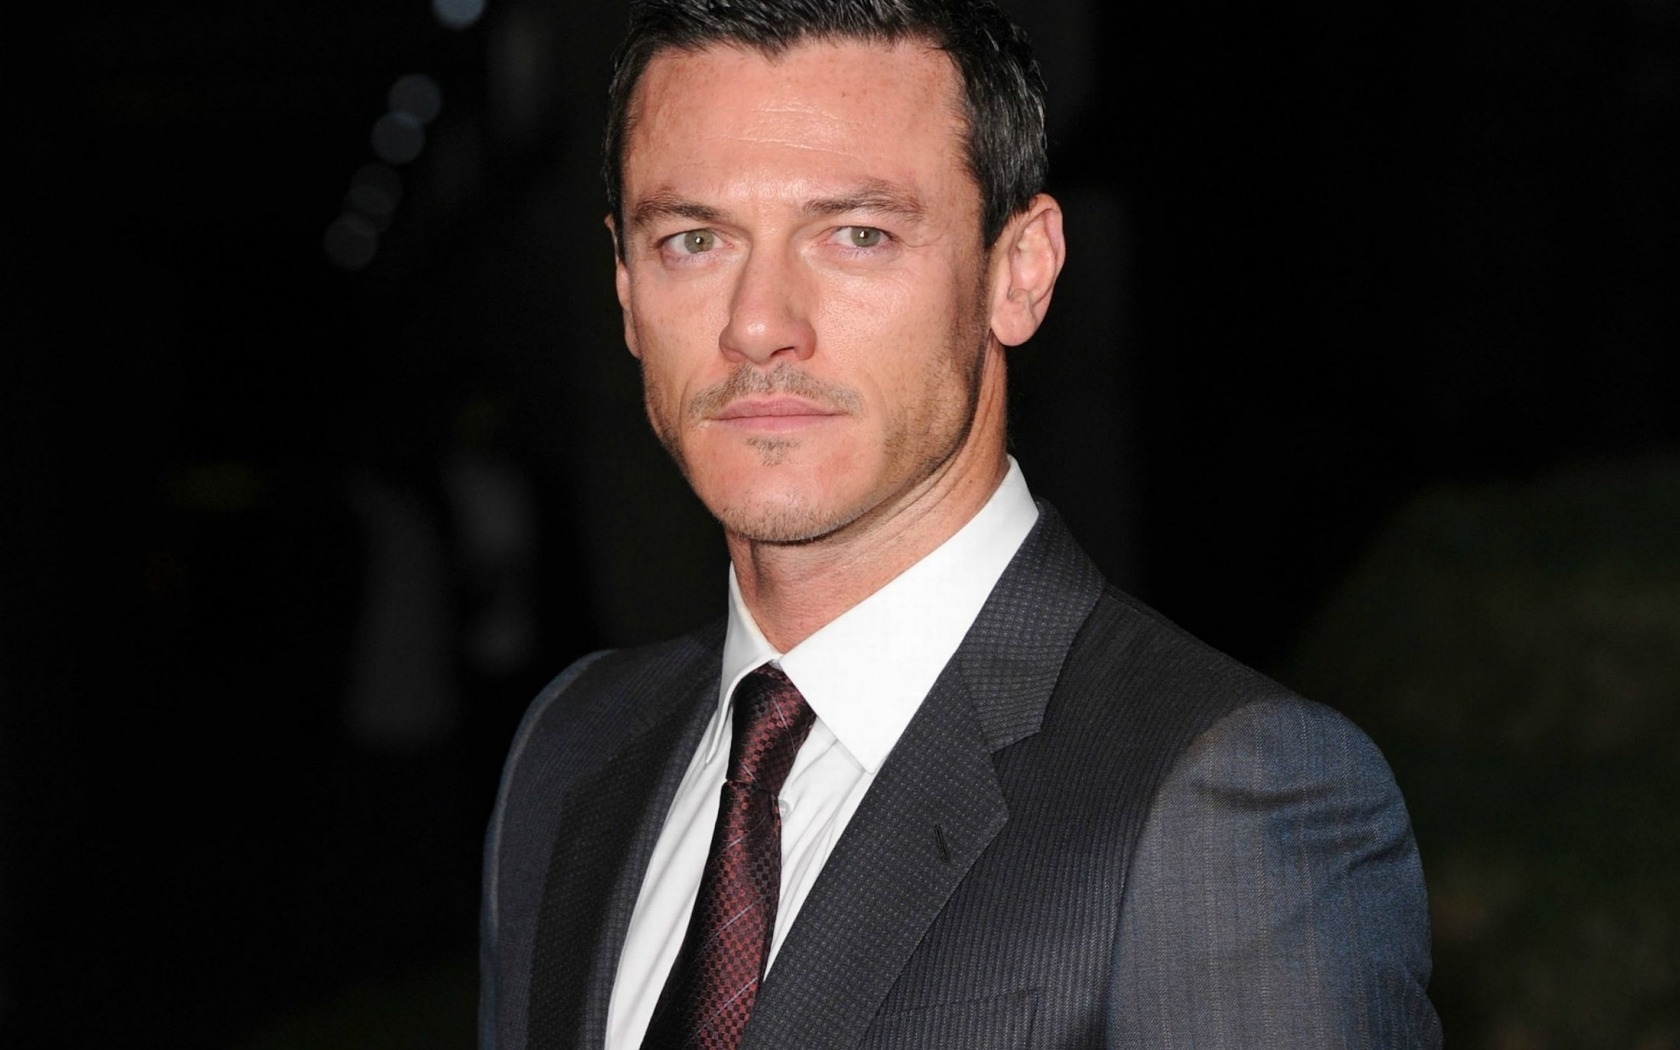 Luke Evans Suit for 1680 x 1050 widescreen resolution